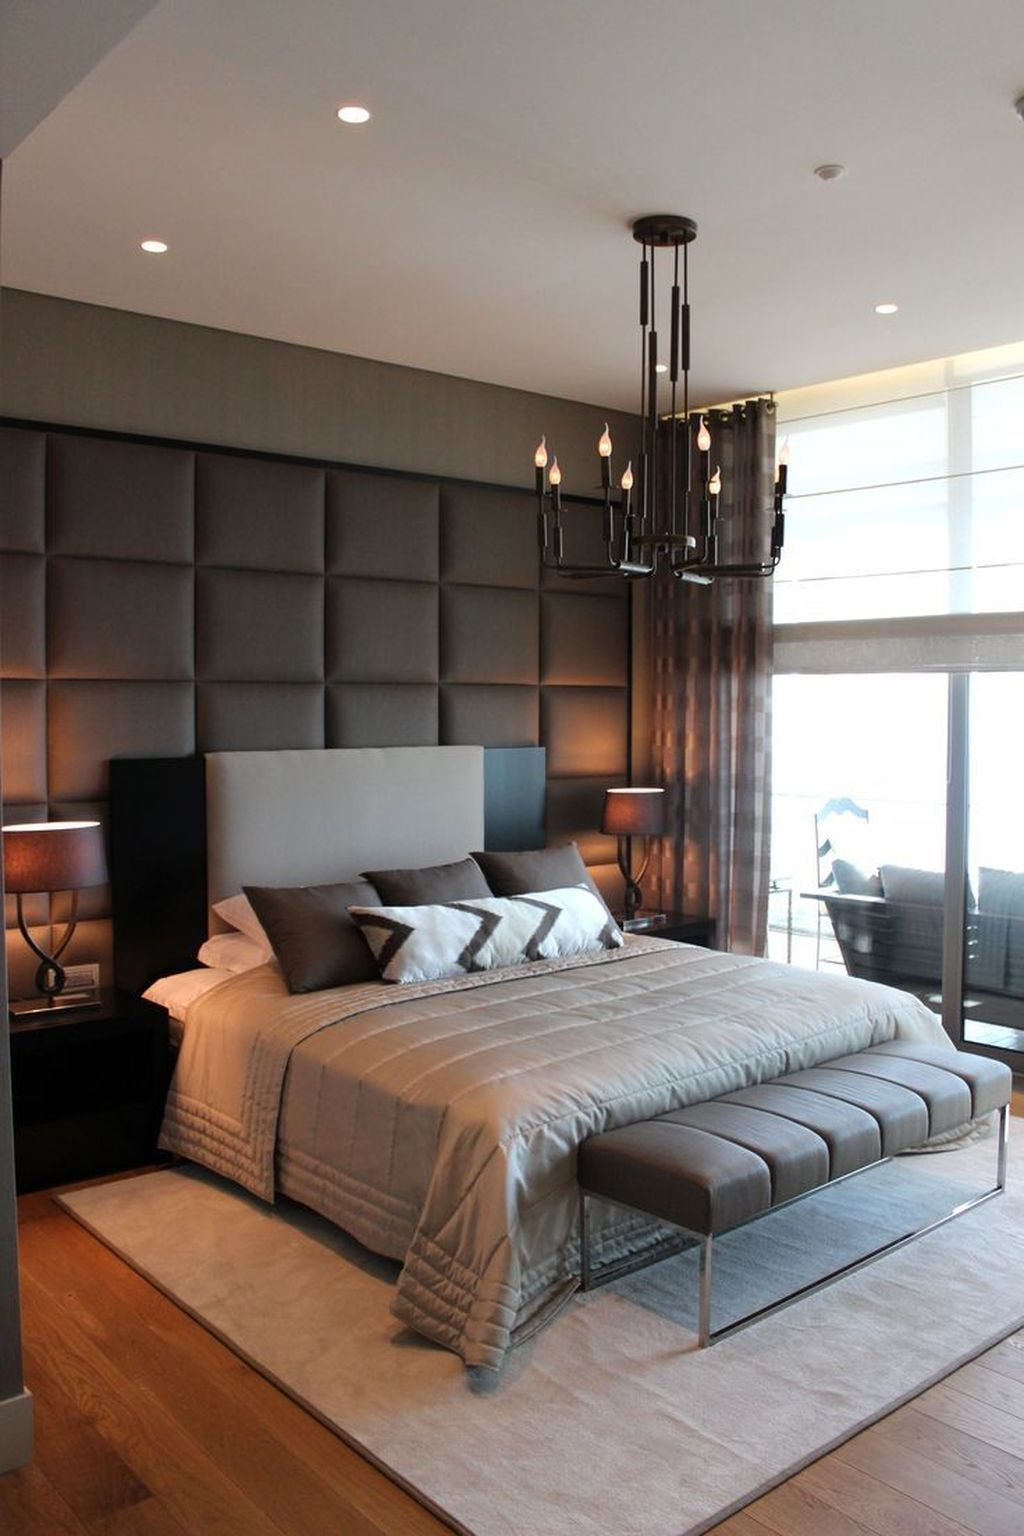 Awesome 47 Stylish Master Bedroom Design Ideas Budget Luxury Bedroom Master Small Modern Bedroom Relaxing Bedroom